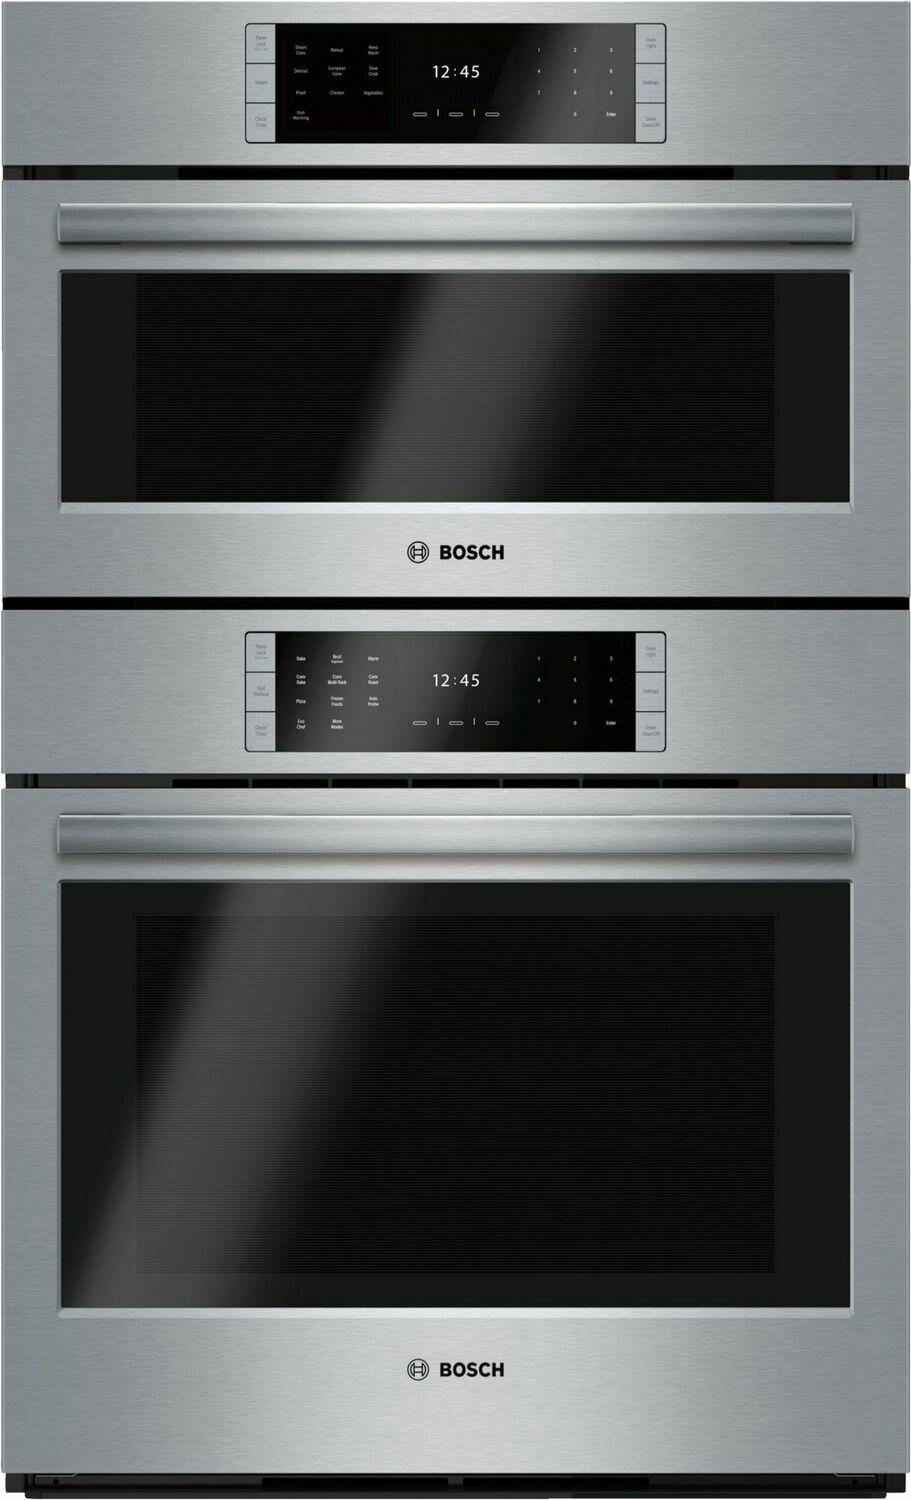 """BoschBenchmark Series, 30"""" Combo, Upper: Steam Convection, Lower: Eu Conv, Tft Touch Control"""